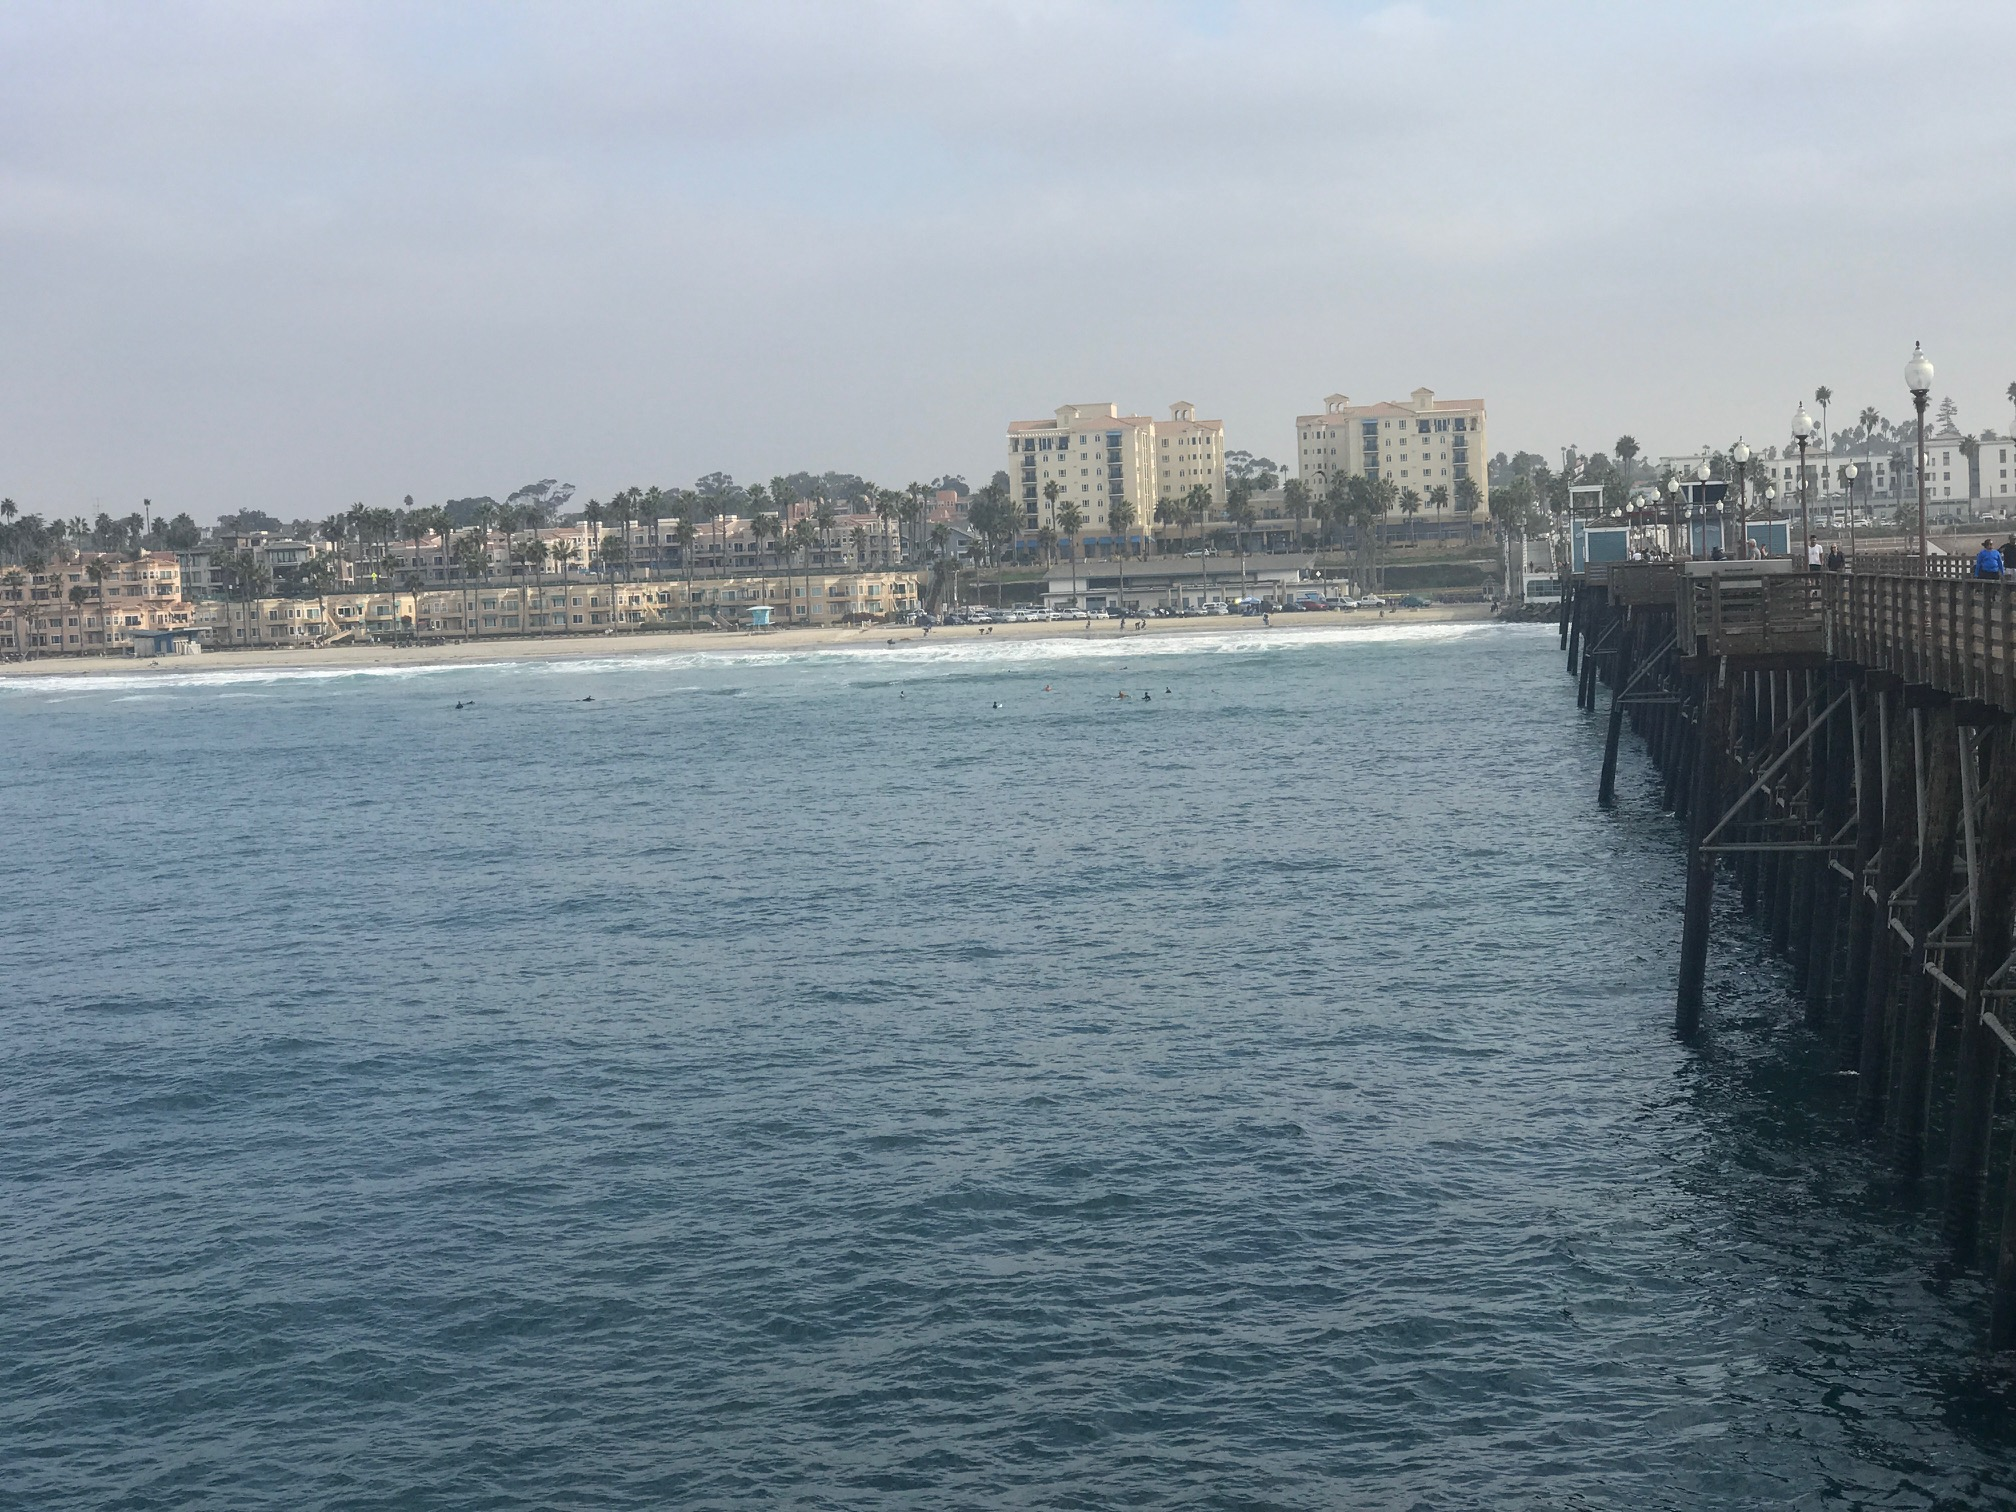 Wyndham Oceanside Pier Resort image